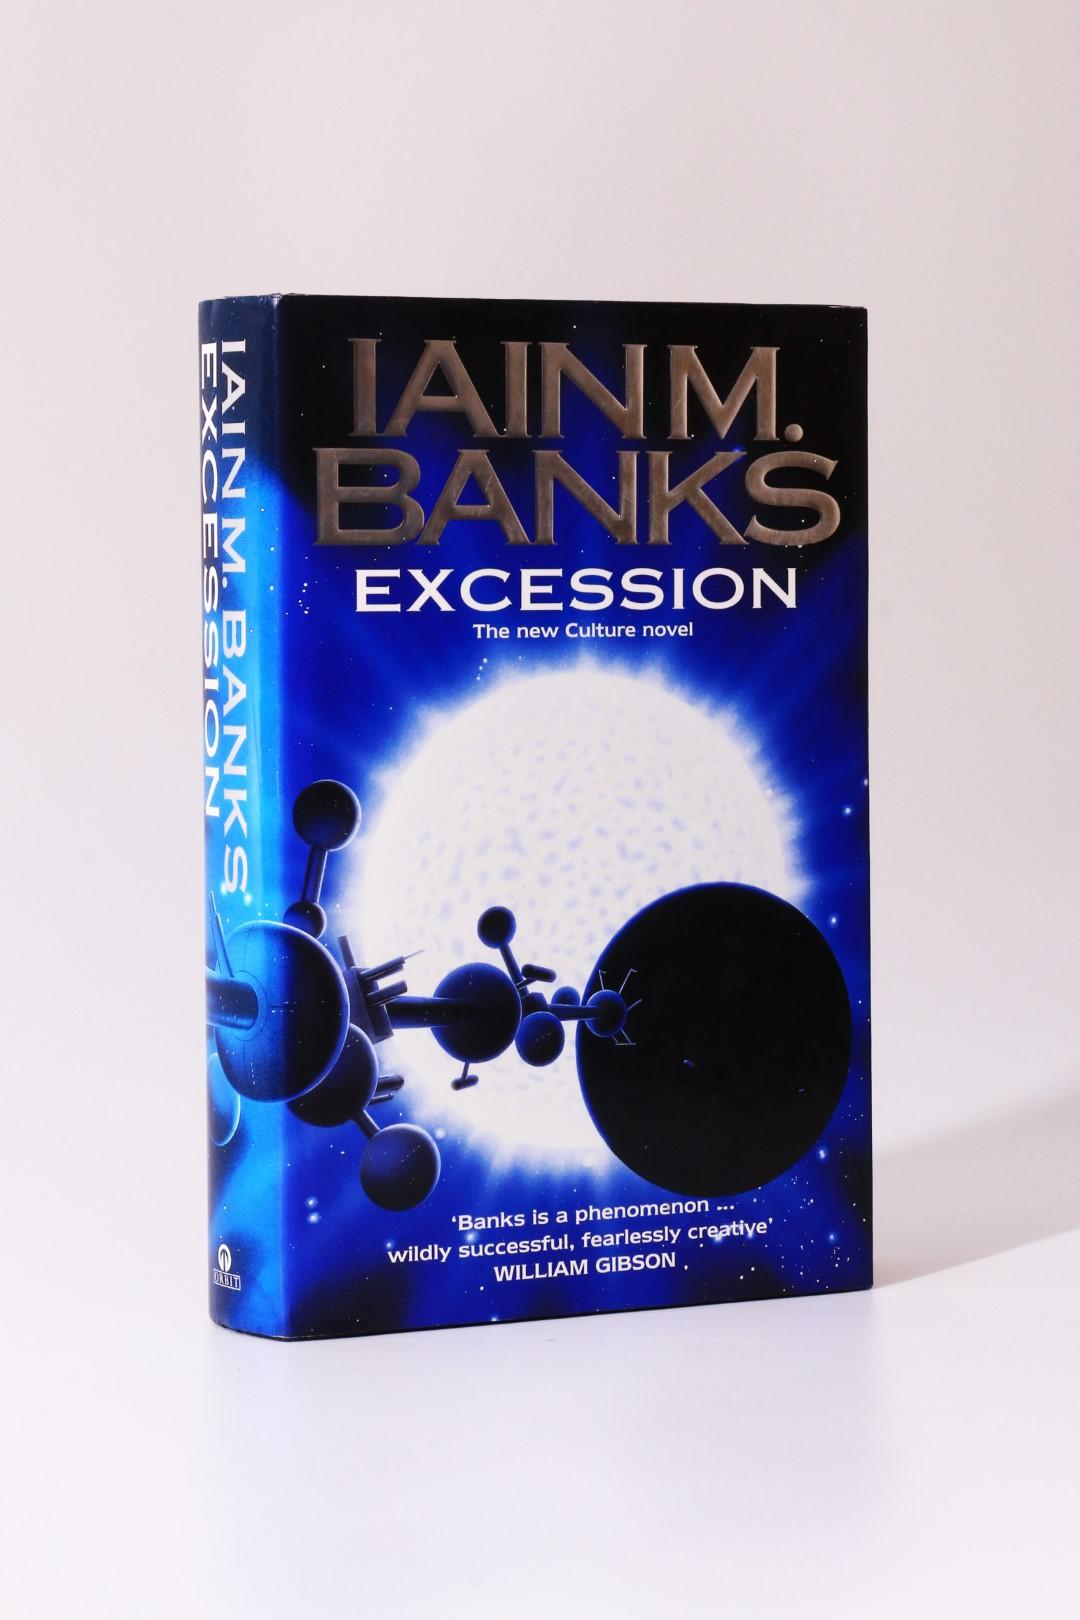 Iain M. Banks - Excession - Orbit, 1996, Signed First Edition.